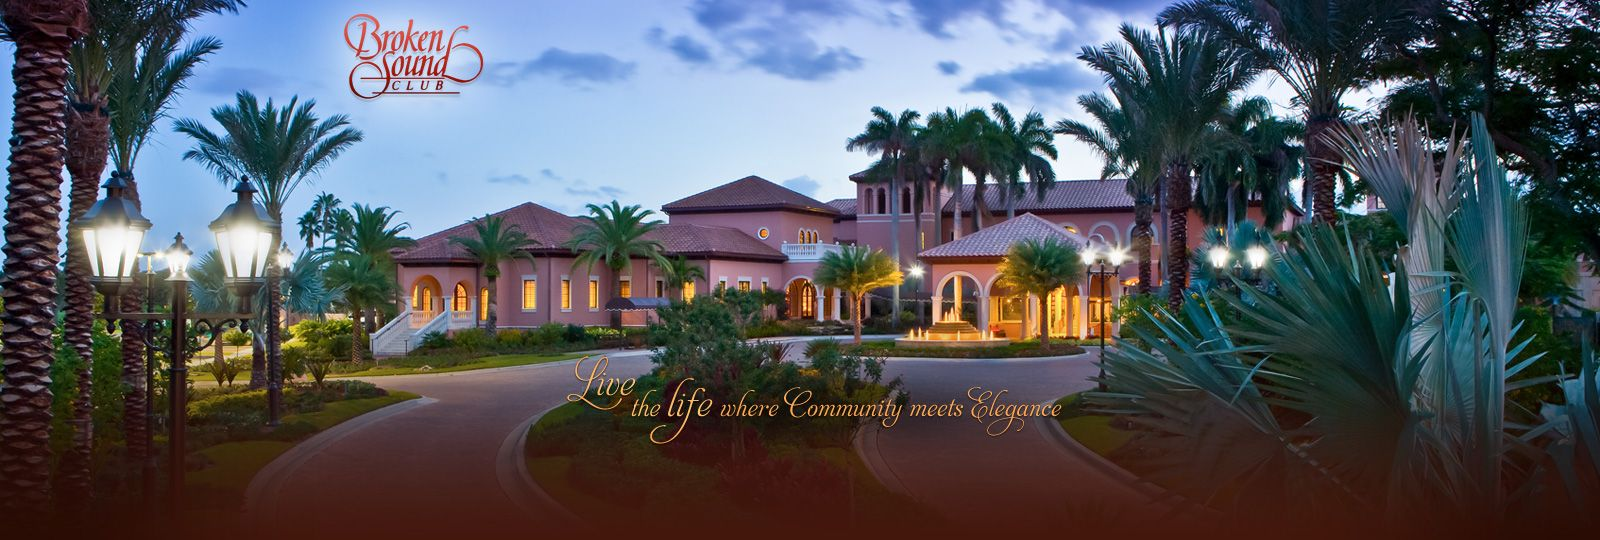 Gated Golf Course Community Boca Raton Homes Broken